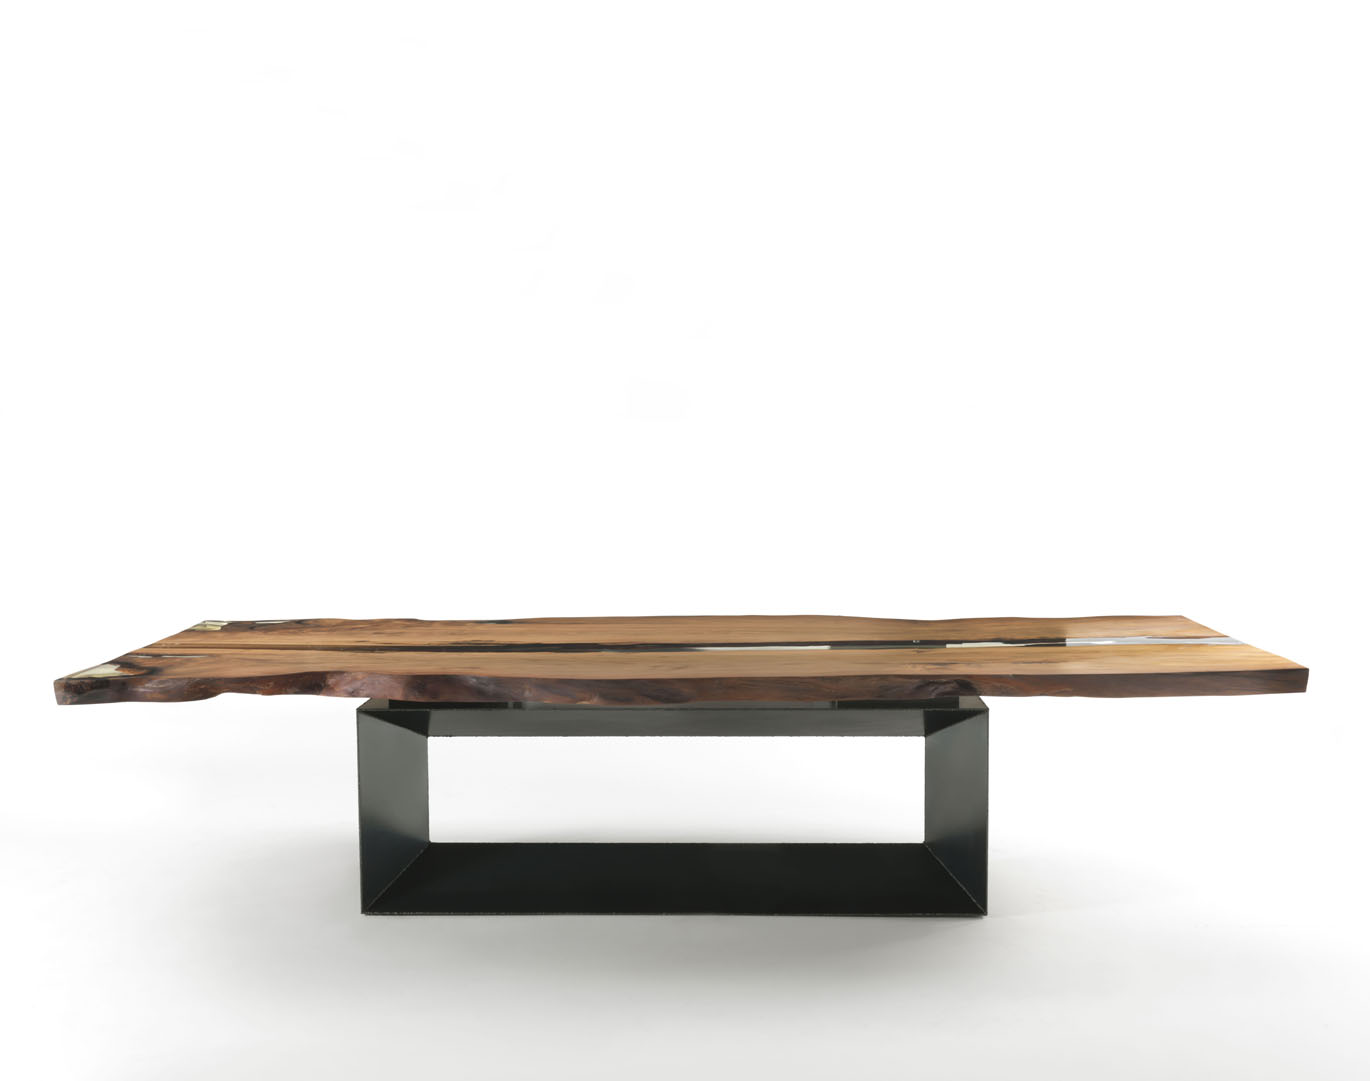 Cube table , CR&S Riva, Riva1920